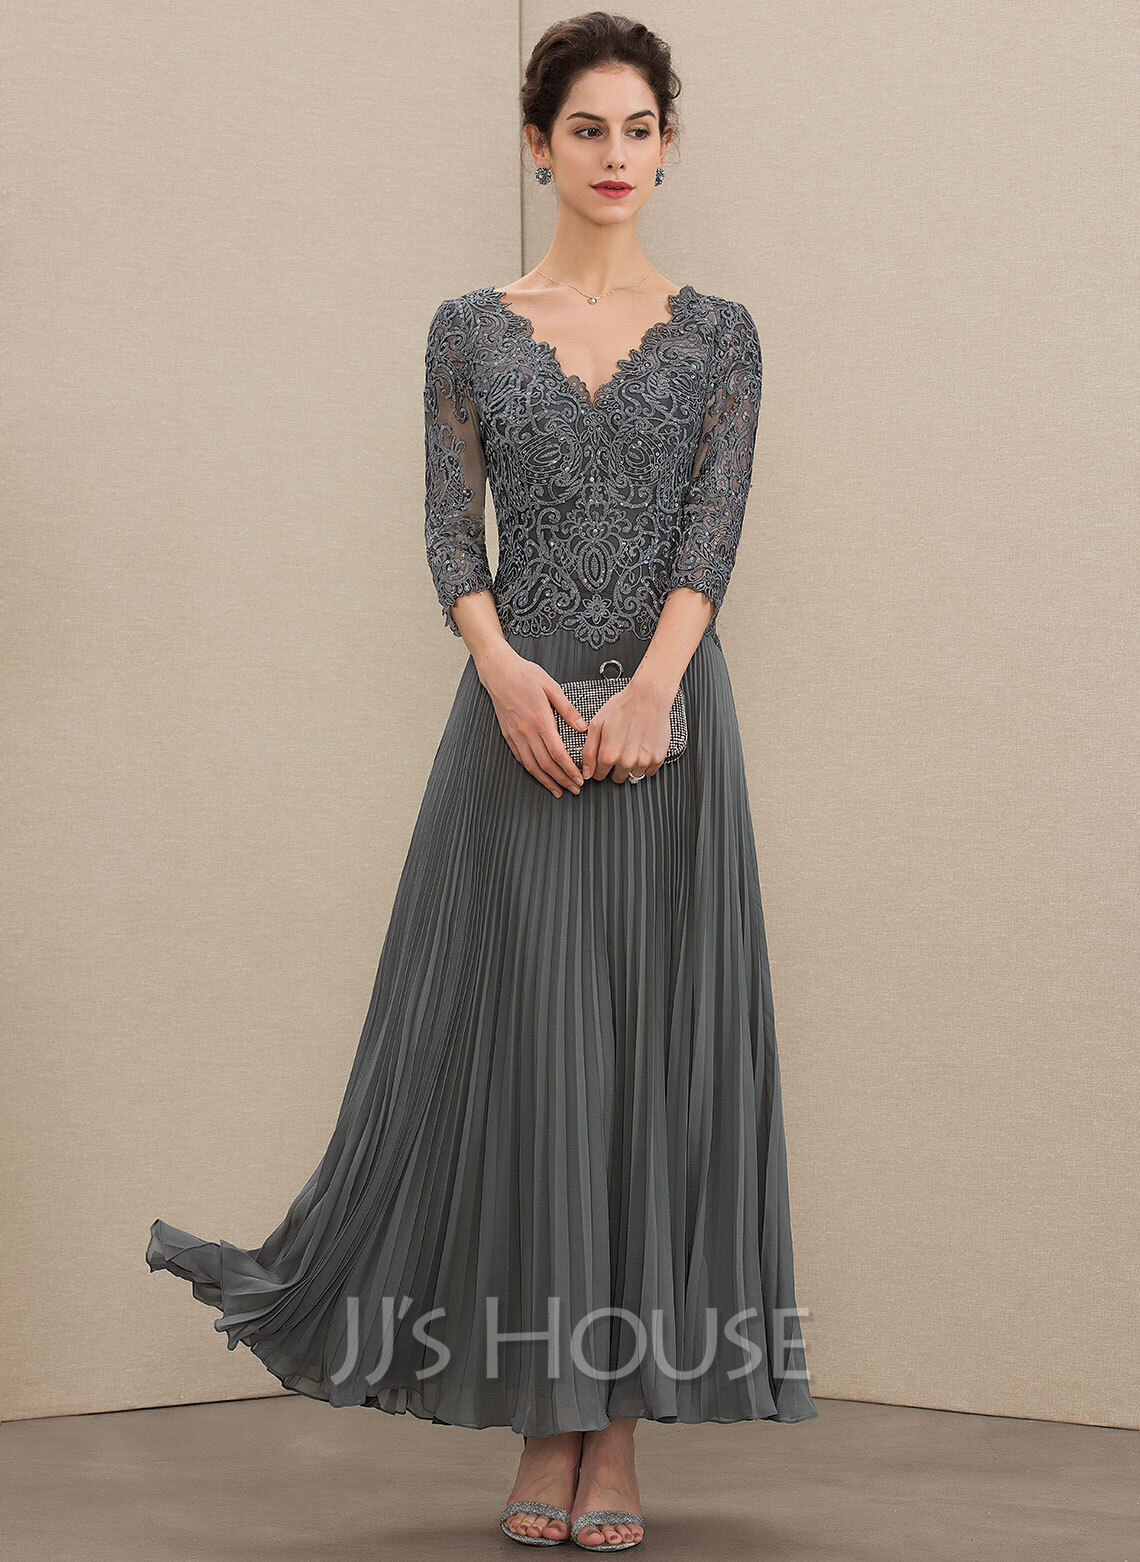 1170d9c87 A-Line V-neck Ankle-Length Chiffon Lace Mother of the Bride Dress. Loading  zoom